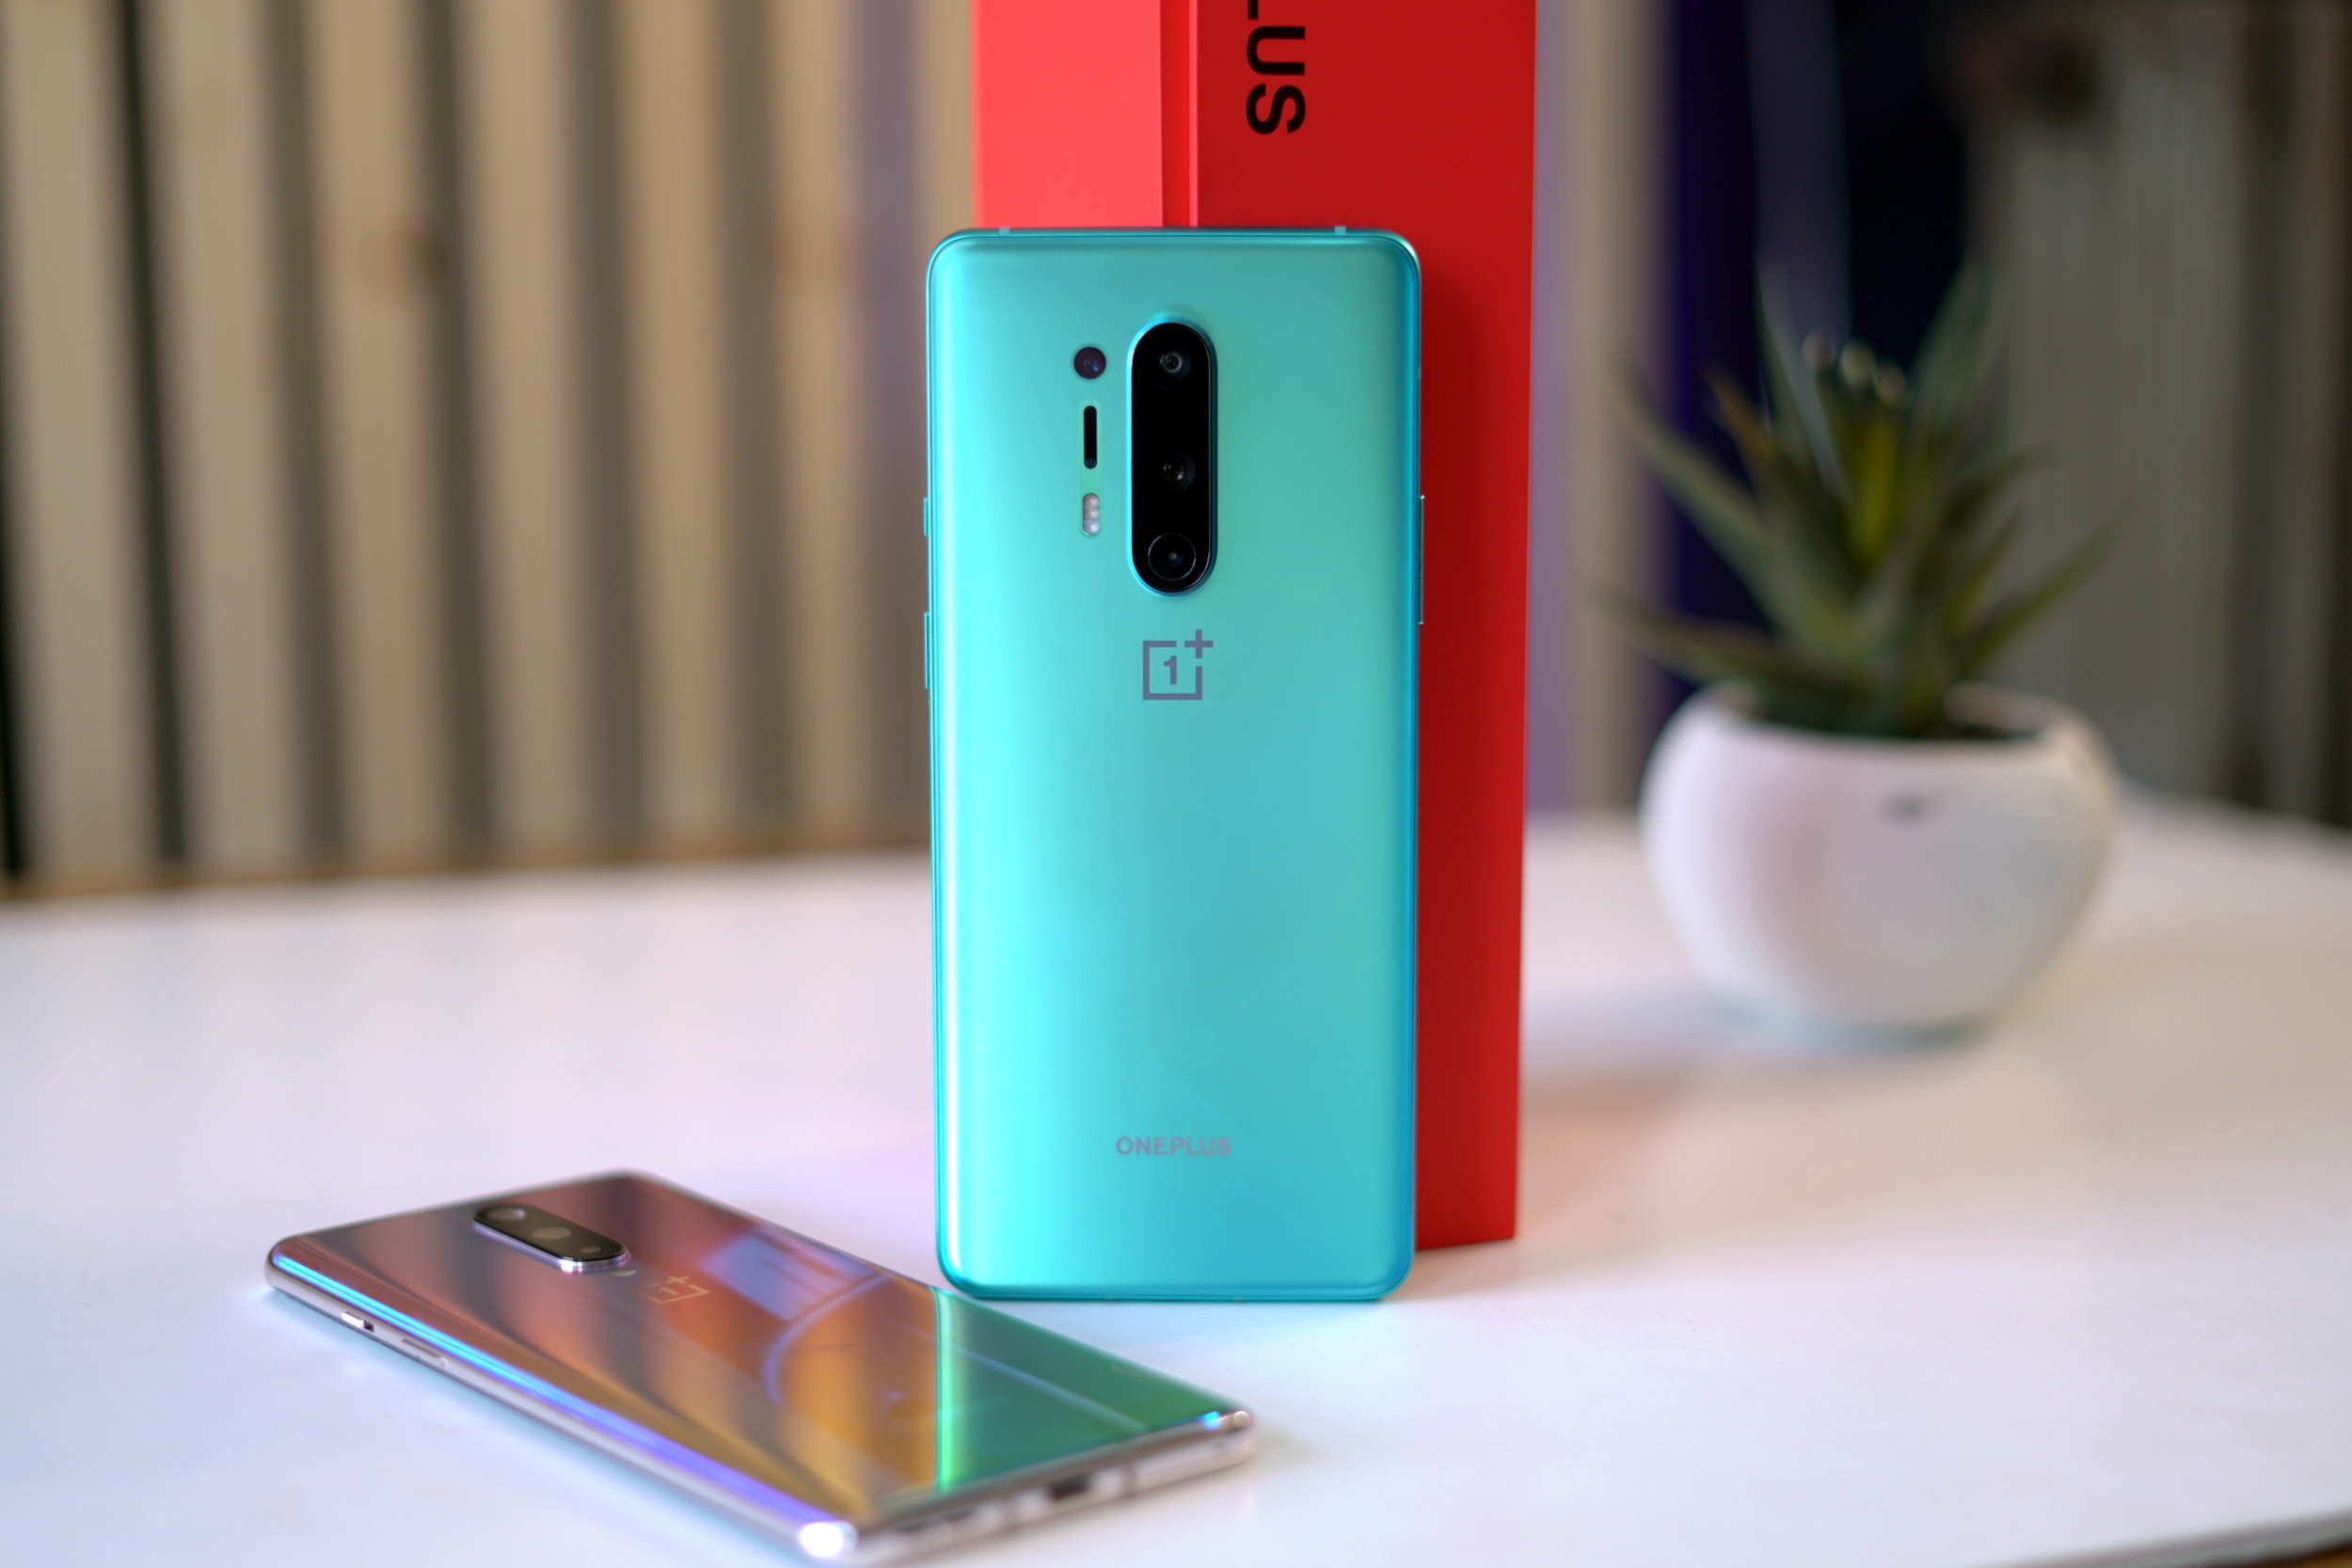 OnePlus 8 & 8 Pro officially unveiled: specs, price and release date